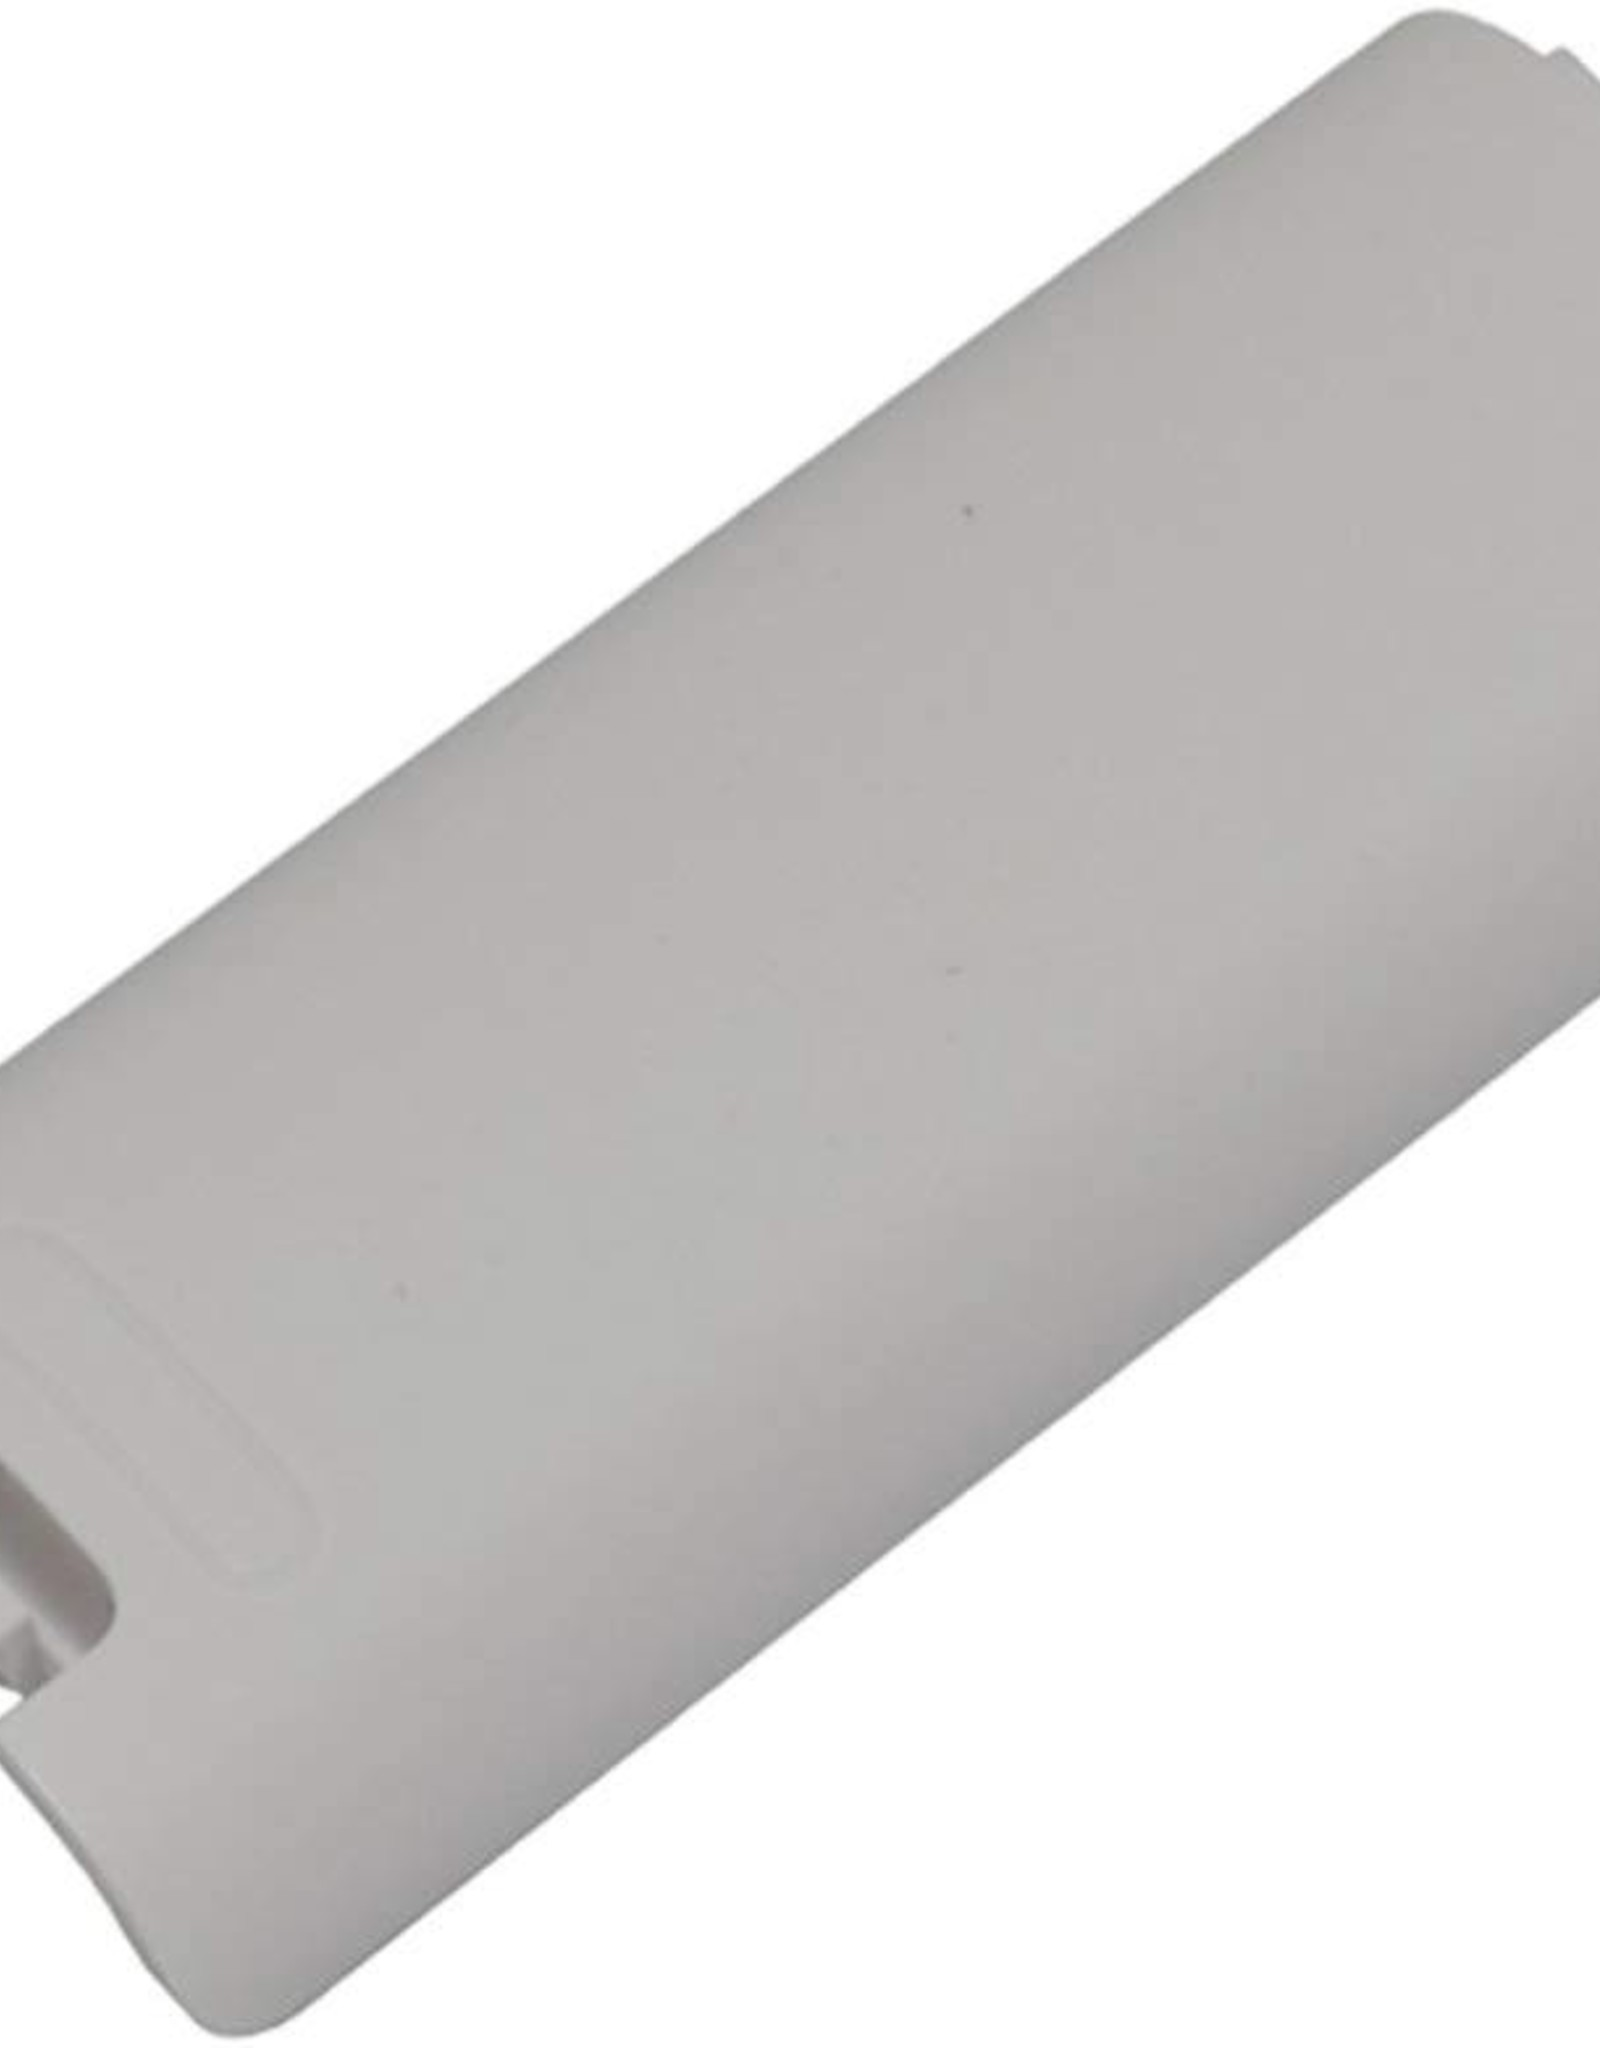 Wii Controller Battery Cover